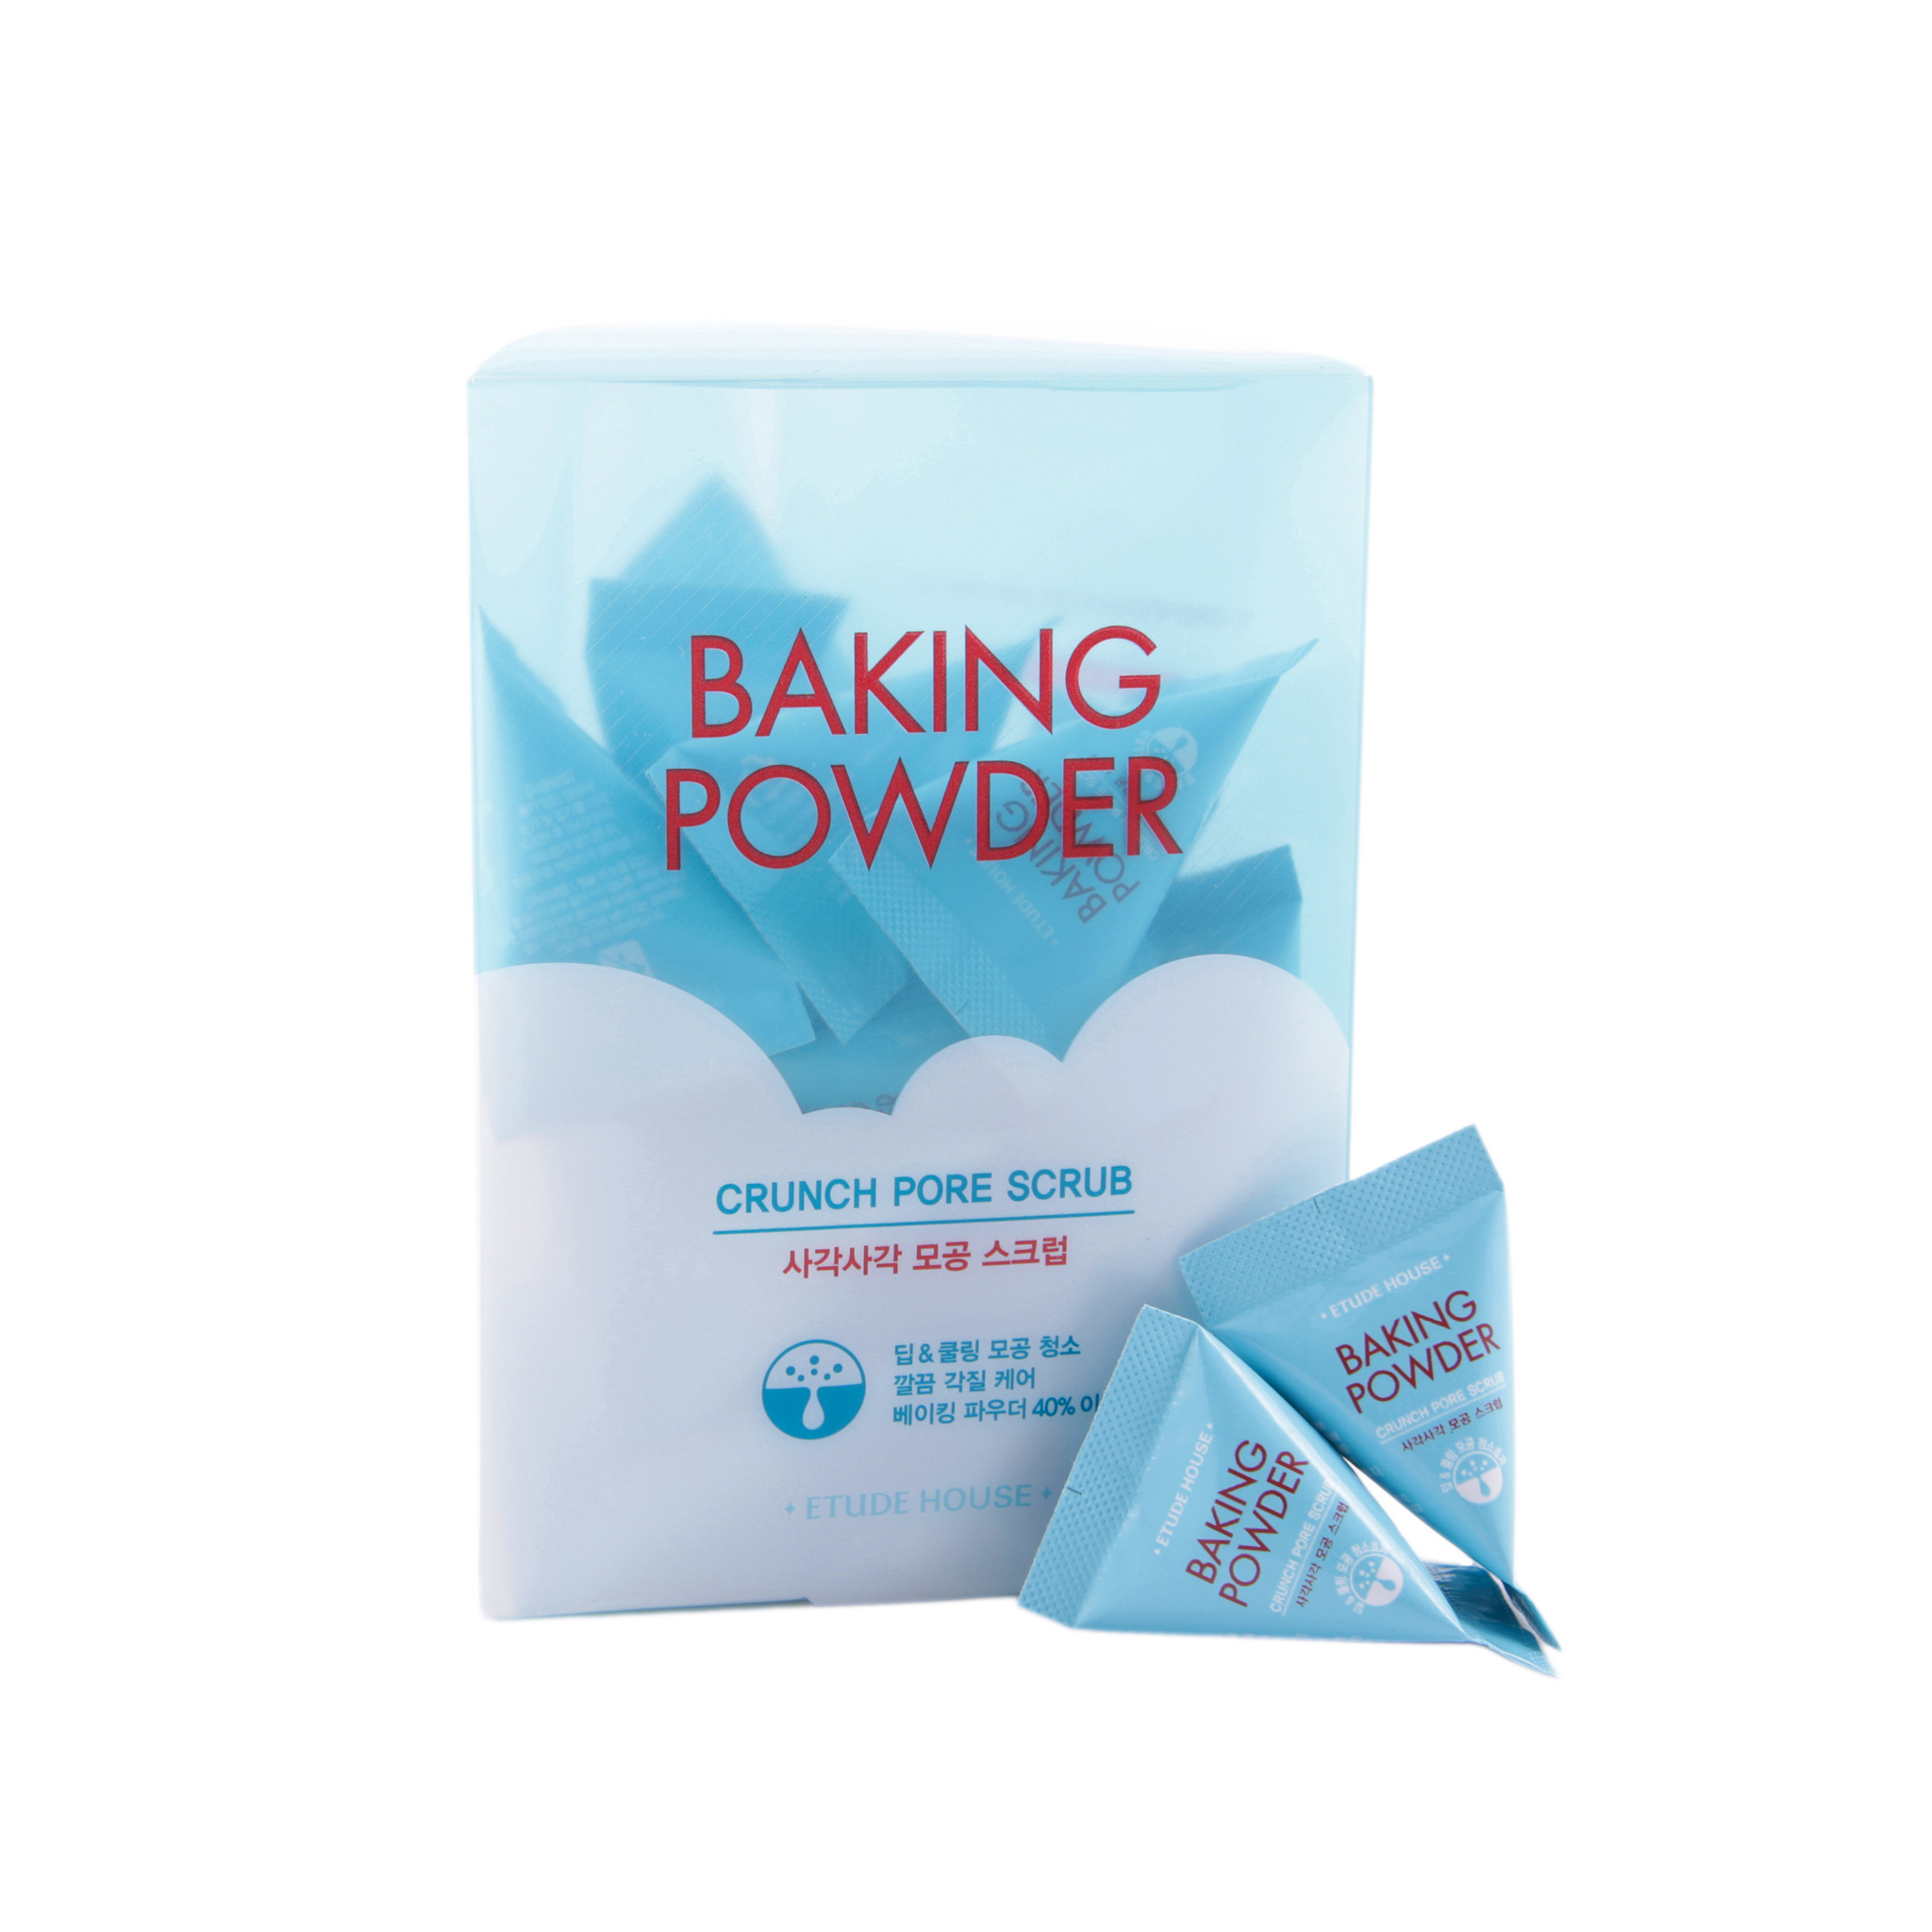 Скраб для лица с содой в пирамидках Etude House Baking Powder Crunch Pore Scrub (упаковка)